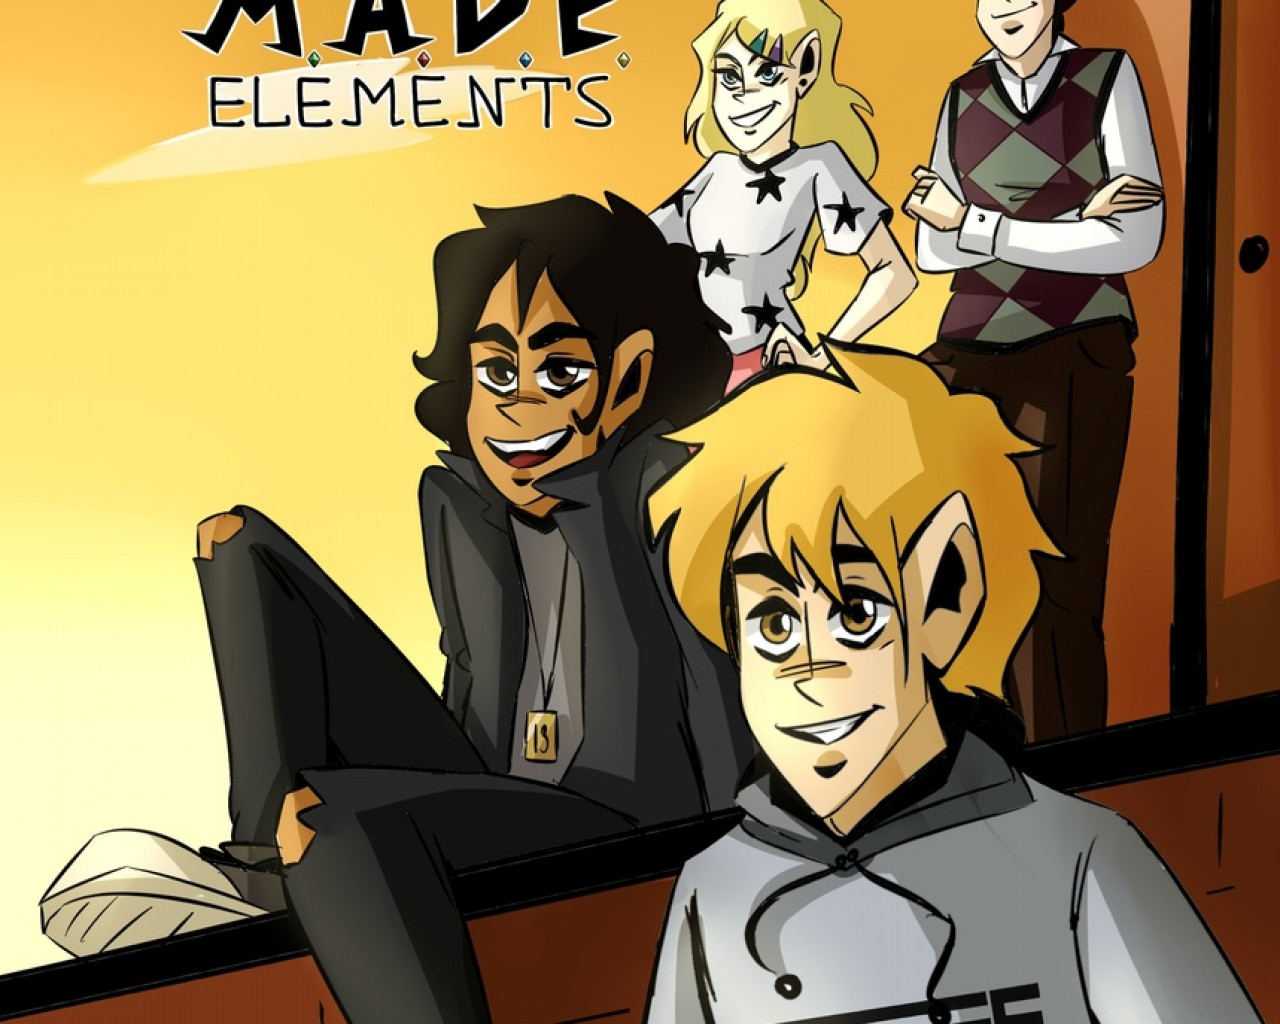 Poster Image for M. A. D. E. Elements